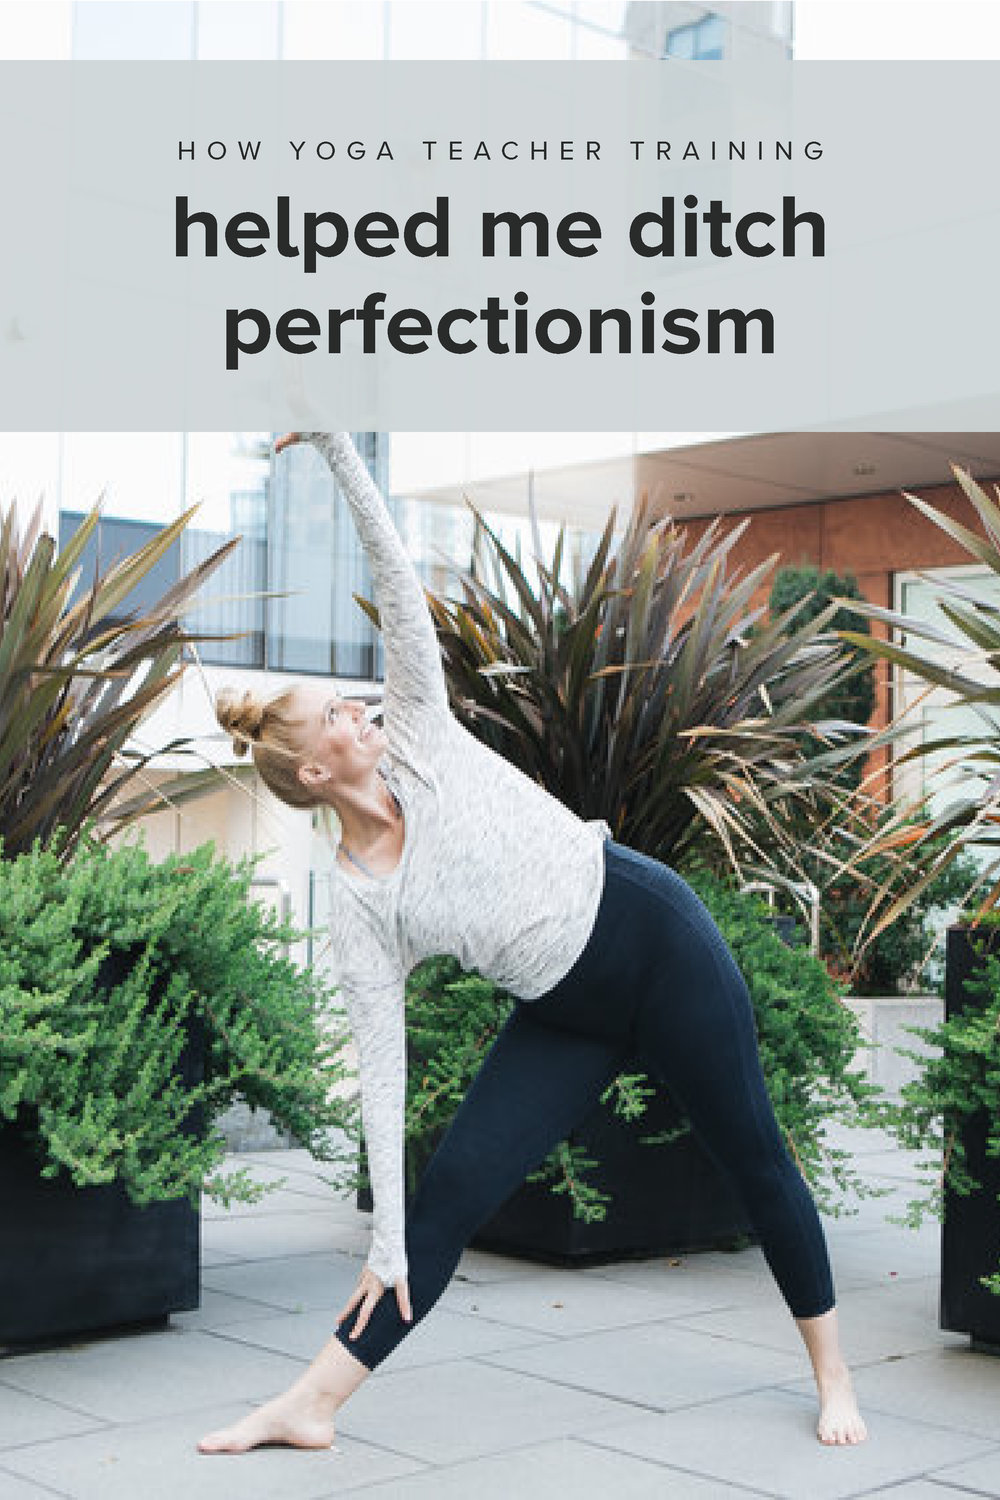 How yoga teacher training helped me ditcher perfectionism and taught me that I am enough. #feelgoodeffect #realfoodwholelife #gentleisthenewperfect #selflove #selfcare #healthy #wellness